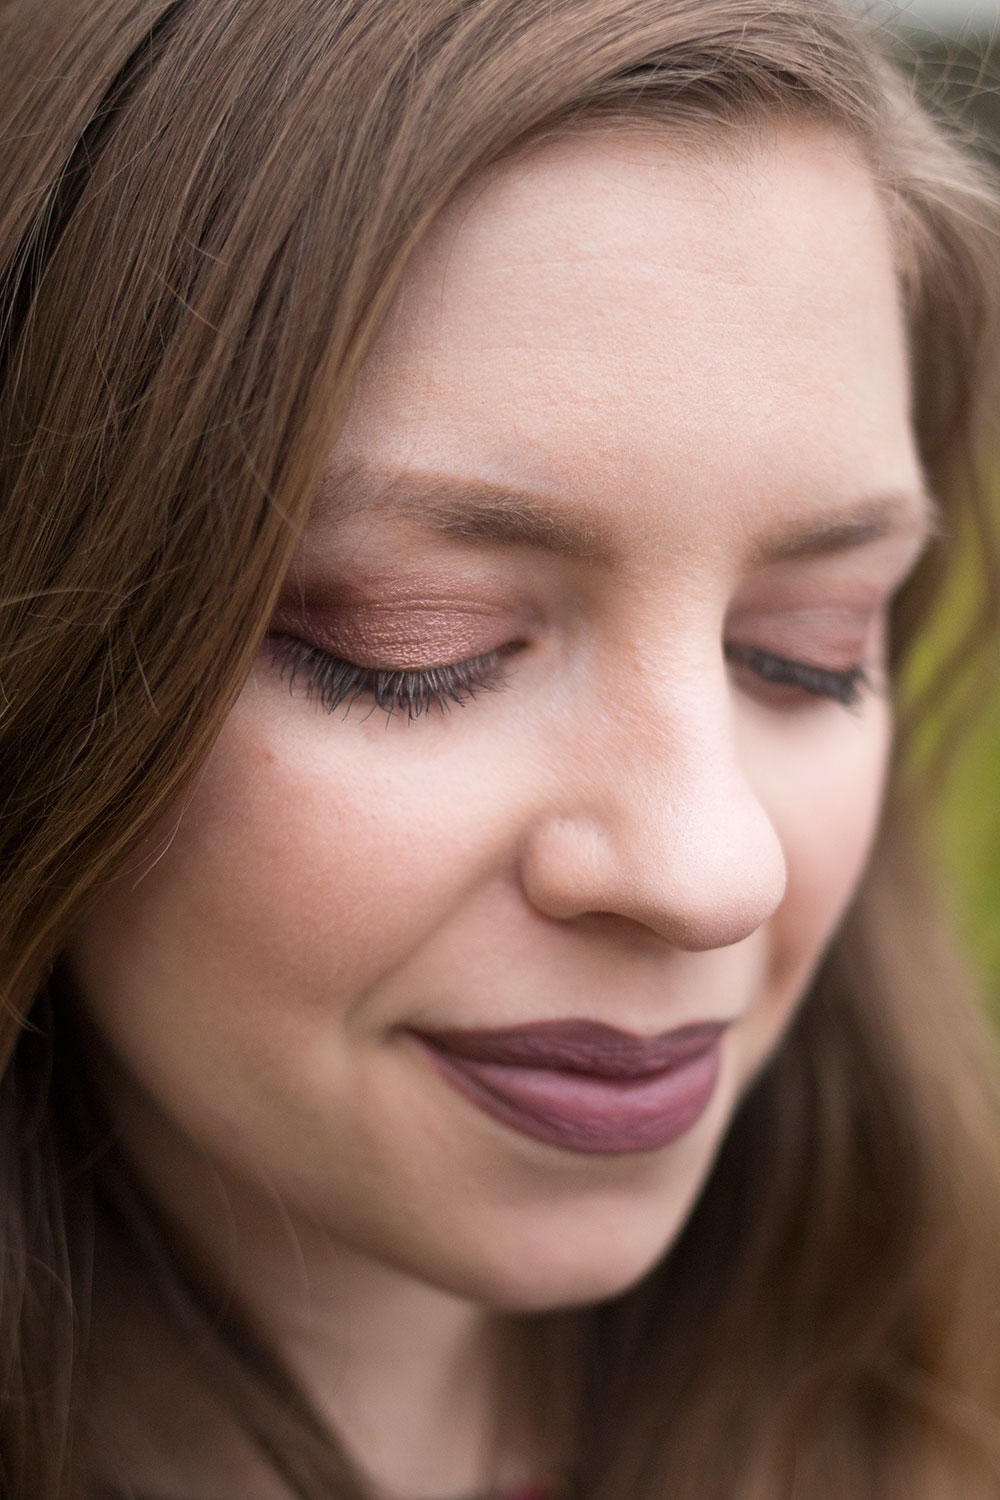 ColourPop Review & Makeup Look: Kapow, Lumiere, & Where the Night Is Eyeshadow Quad // Hello Rigby Seattle Beauty & Makeup Blog